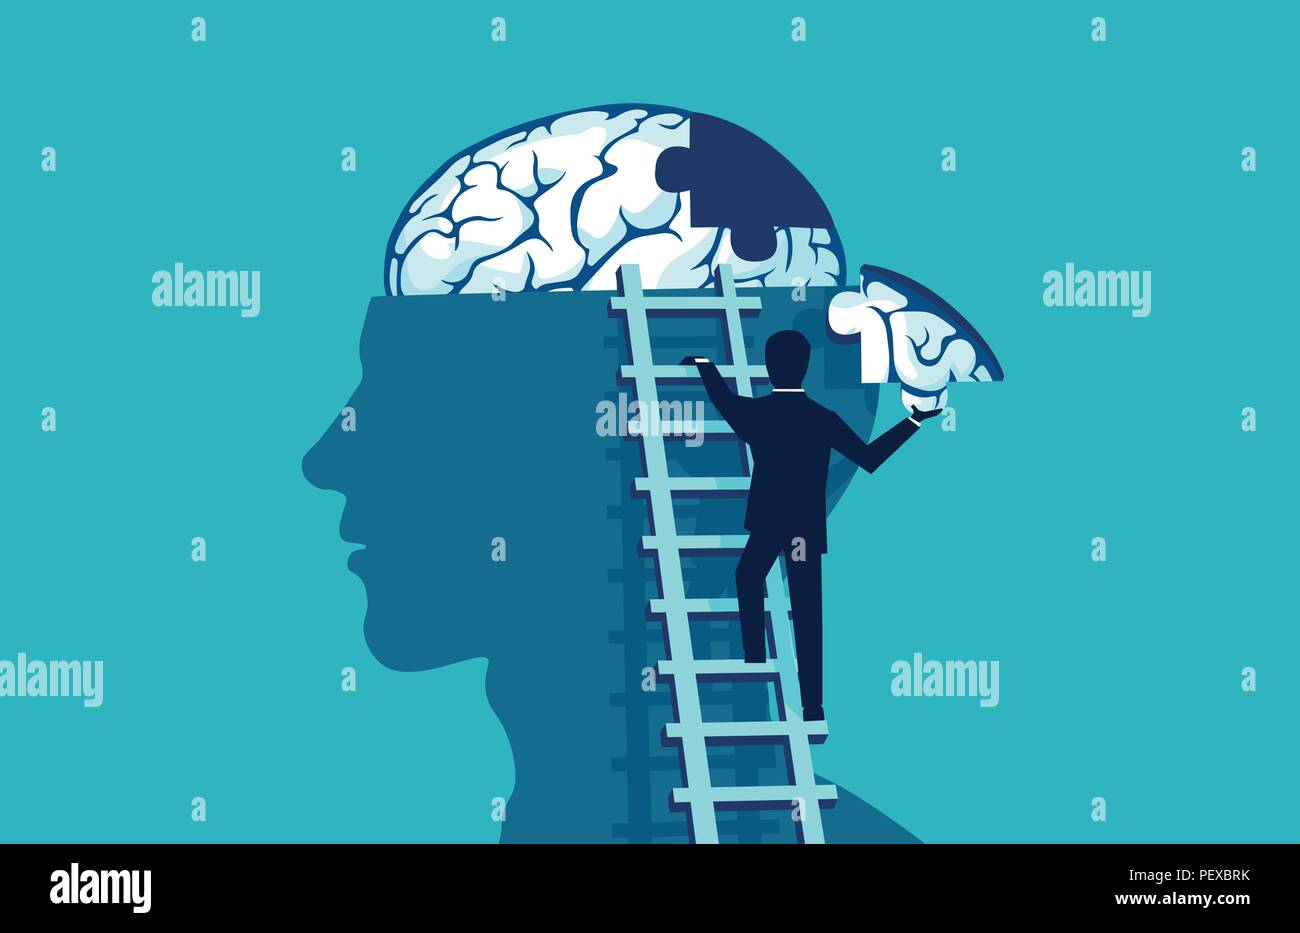 Brain puzzle vector concept. Business man climbing up the stairs reaching human head to add piece of brain puzzle. - Stock Vector